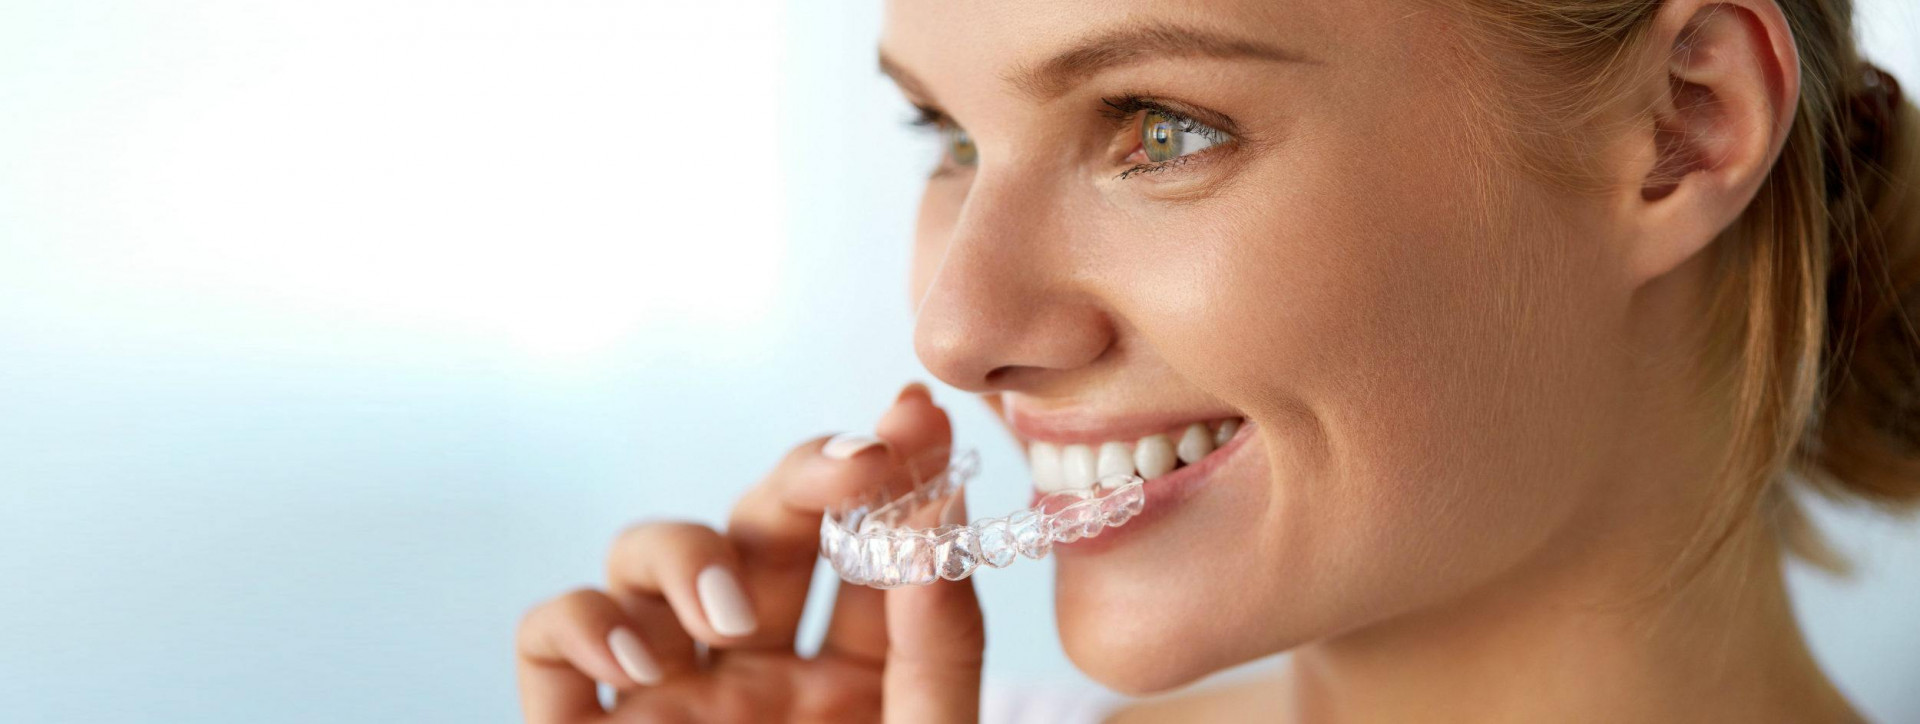 What Are the Best Braces for Adults?